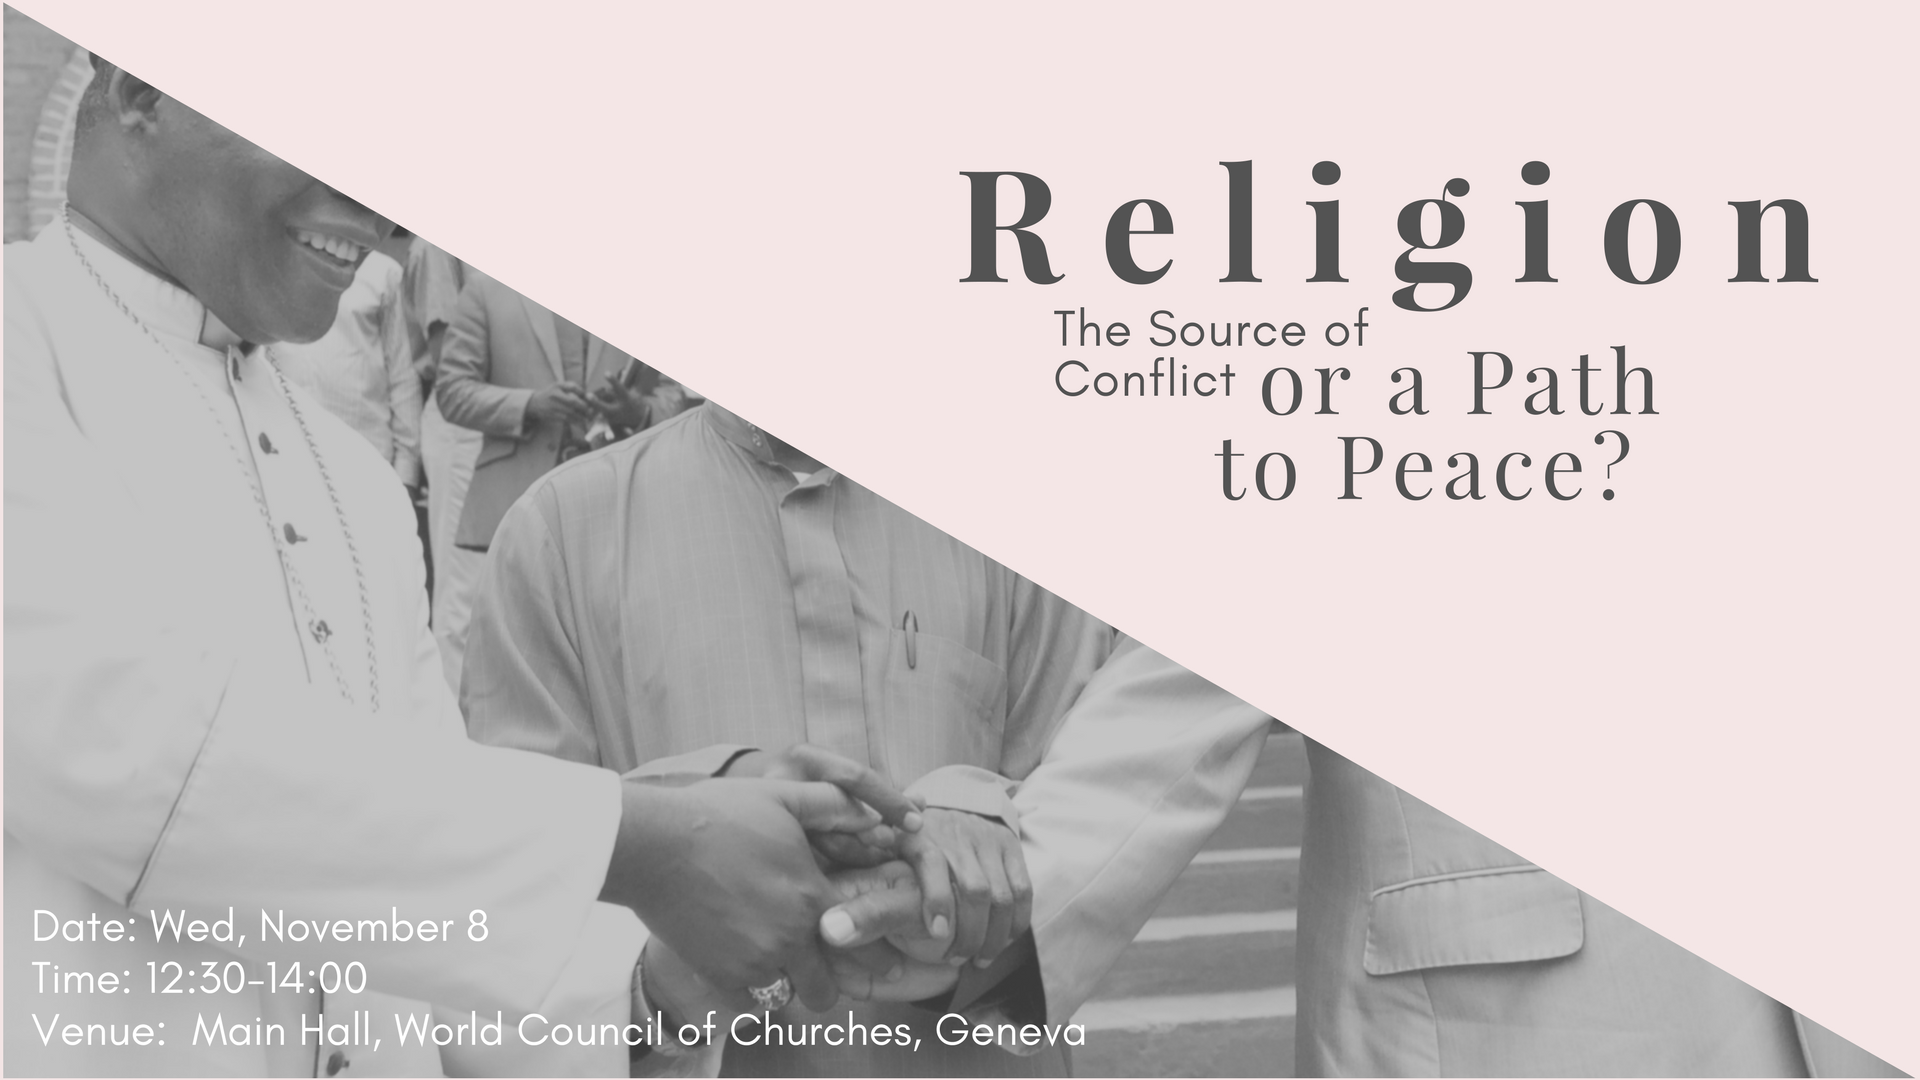 religion source of conflict or peace It found that taking part in any social group - a religion or a sports team, for example - can strengthen the bonds between citizens in a country, and corresponds with slightly higher levels of peace.